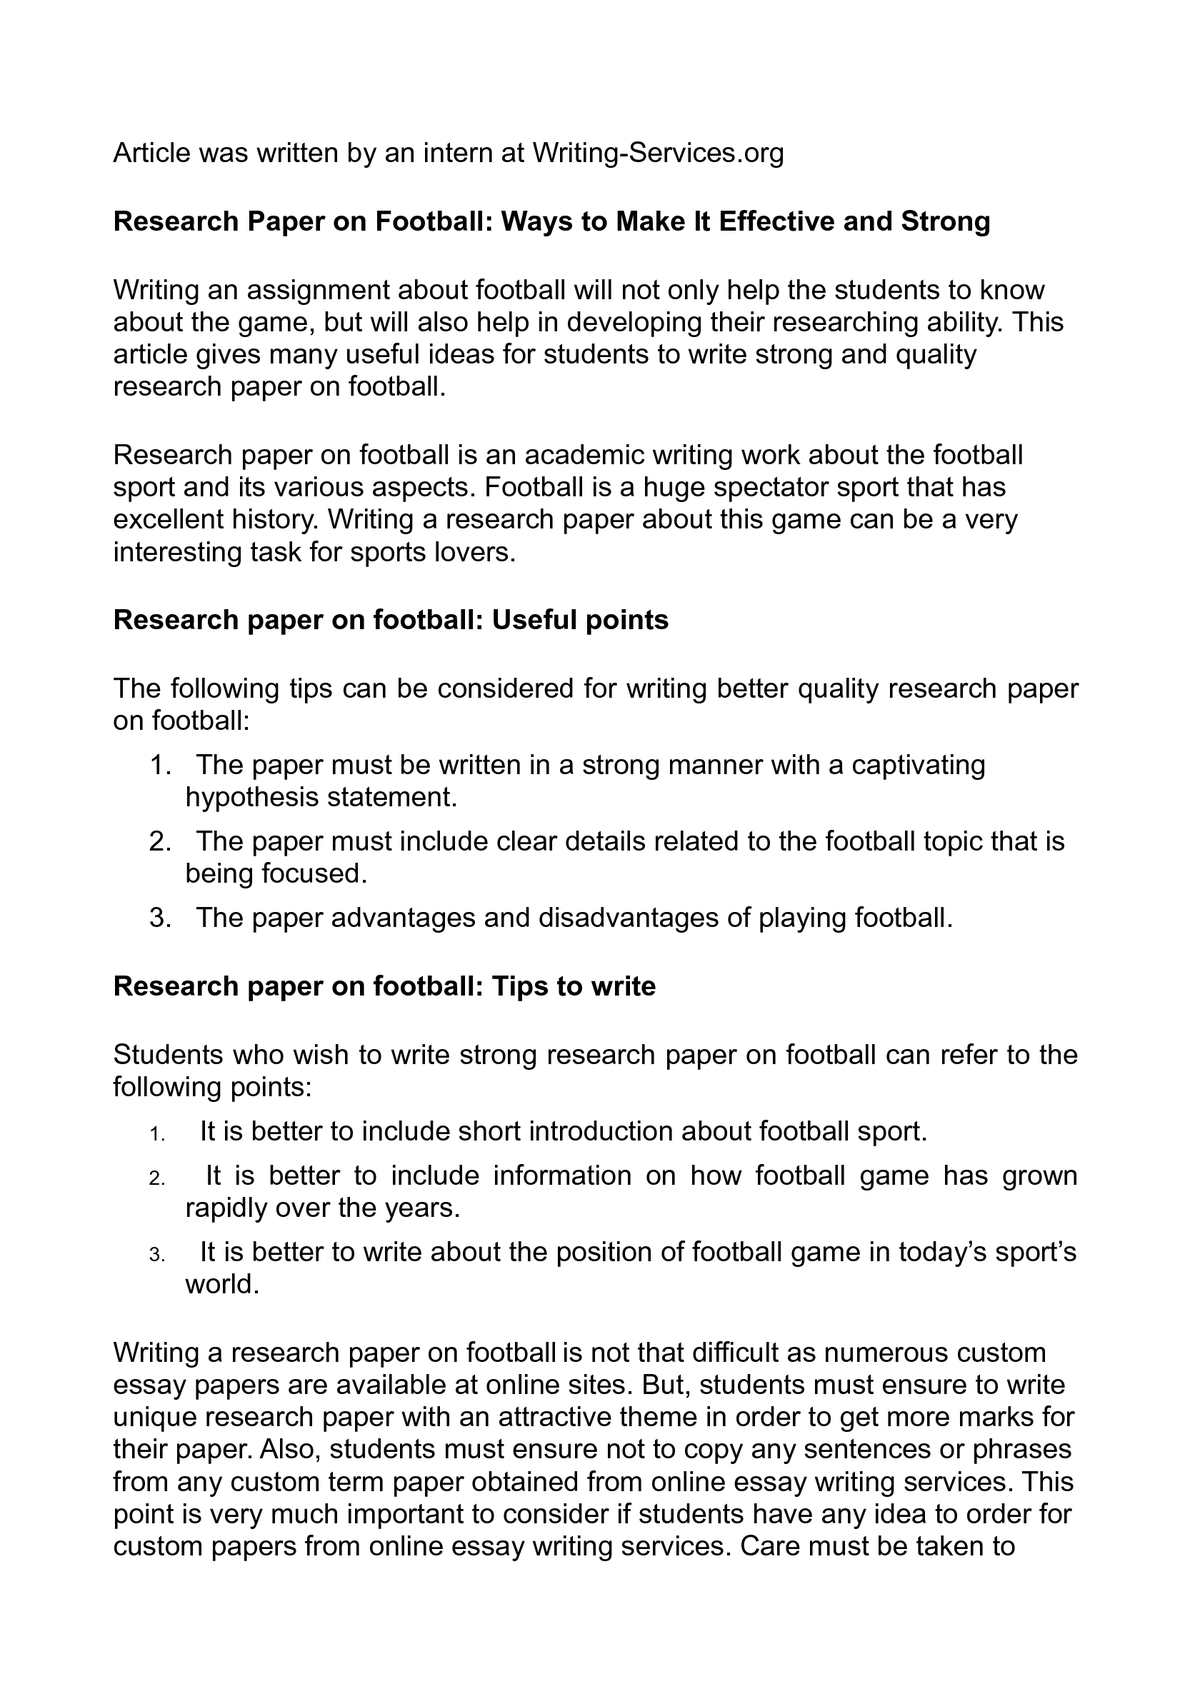 002 Research Paper Sport Topics Excellent Finance Sports Nutrition Injury Full